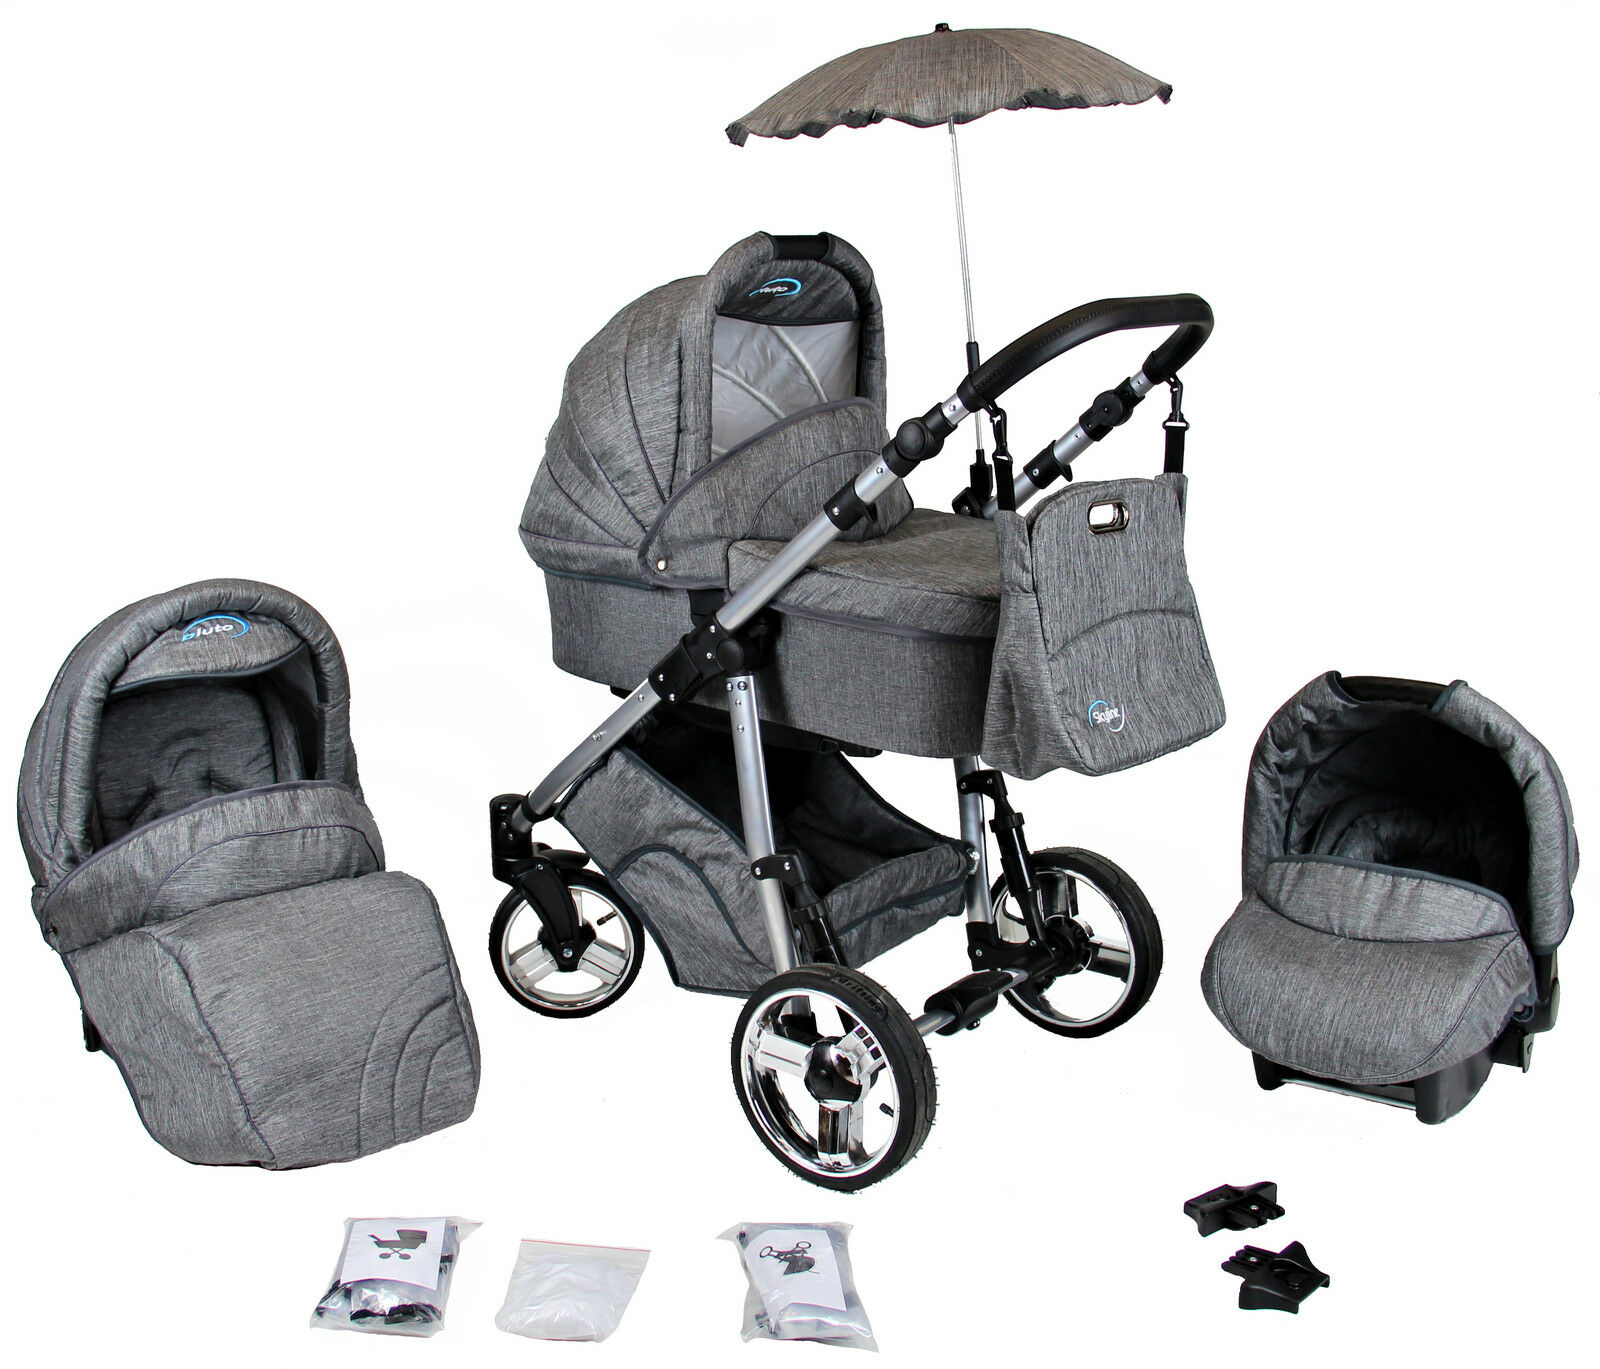 pluto kombikinderwagen kinderwagen mit babyschale poussette pram neu babywagen eur 338 00. Black Bedroom Furniture Sets. Home Design Ideas